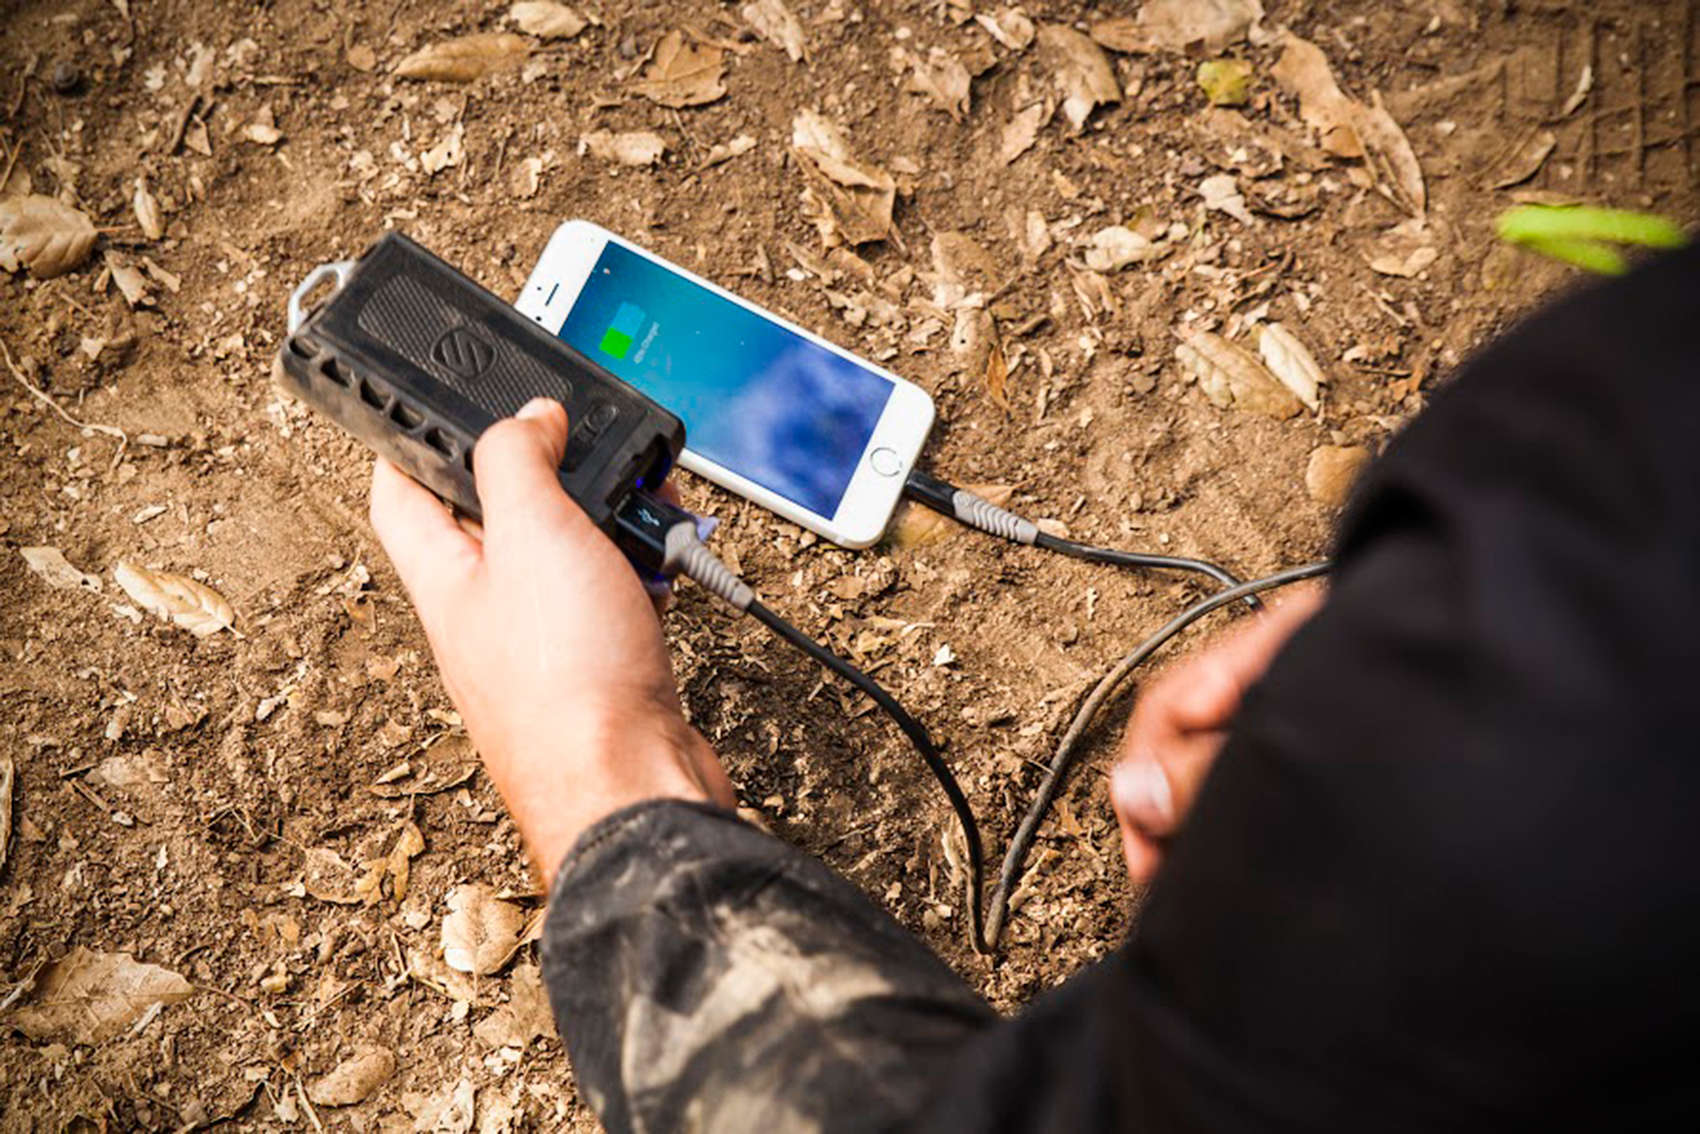 The goBAT 6000 can charge your smartphone up to three times during your outdoor adventures.